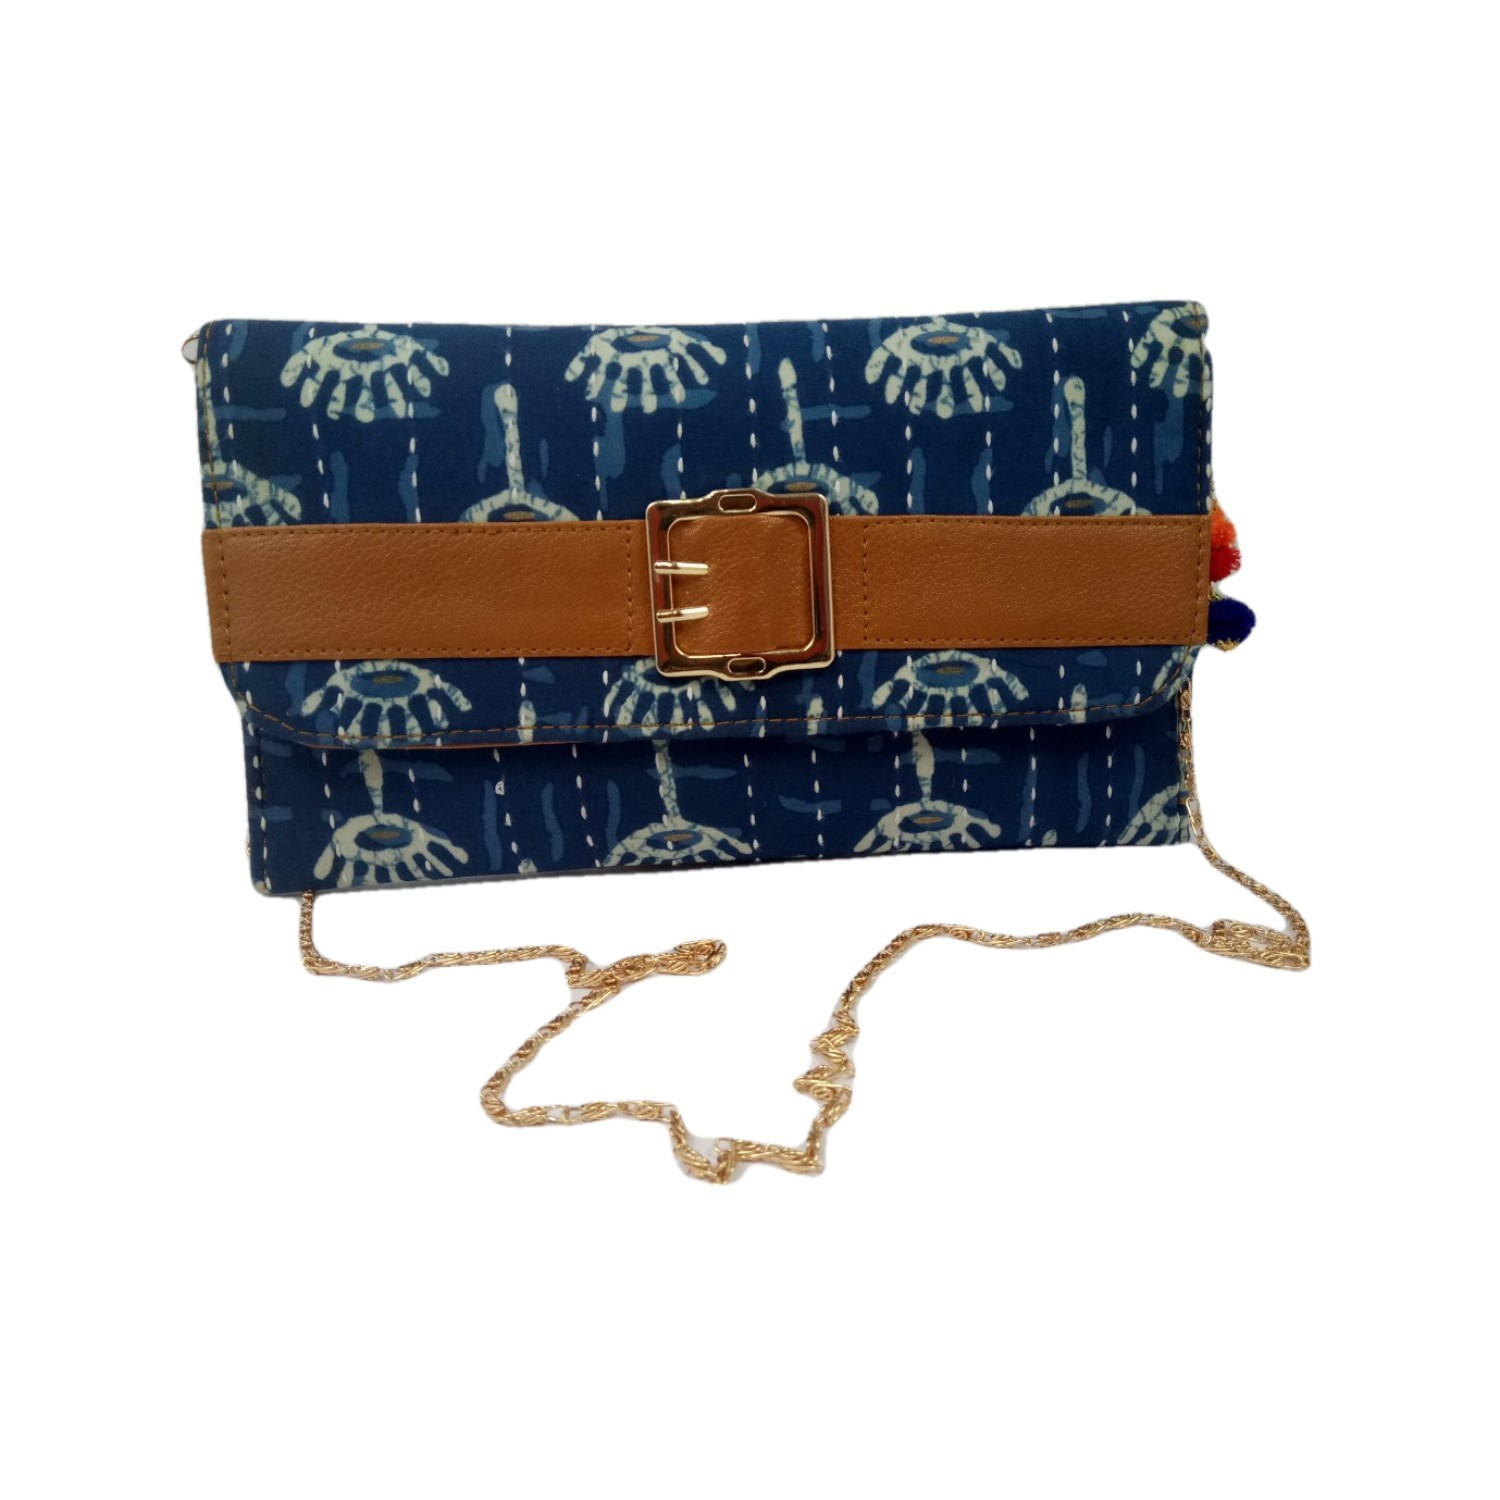 Handmade Excellent Blue Genuine Clutch With Detachable Chain by Women Self Help Groups of Rajasthan